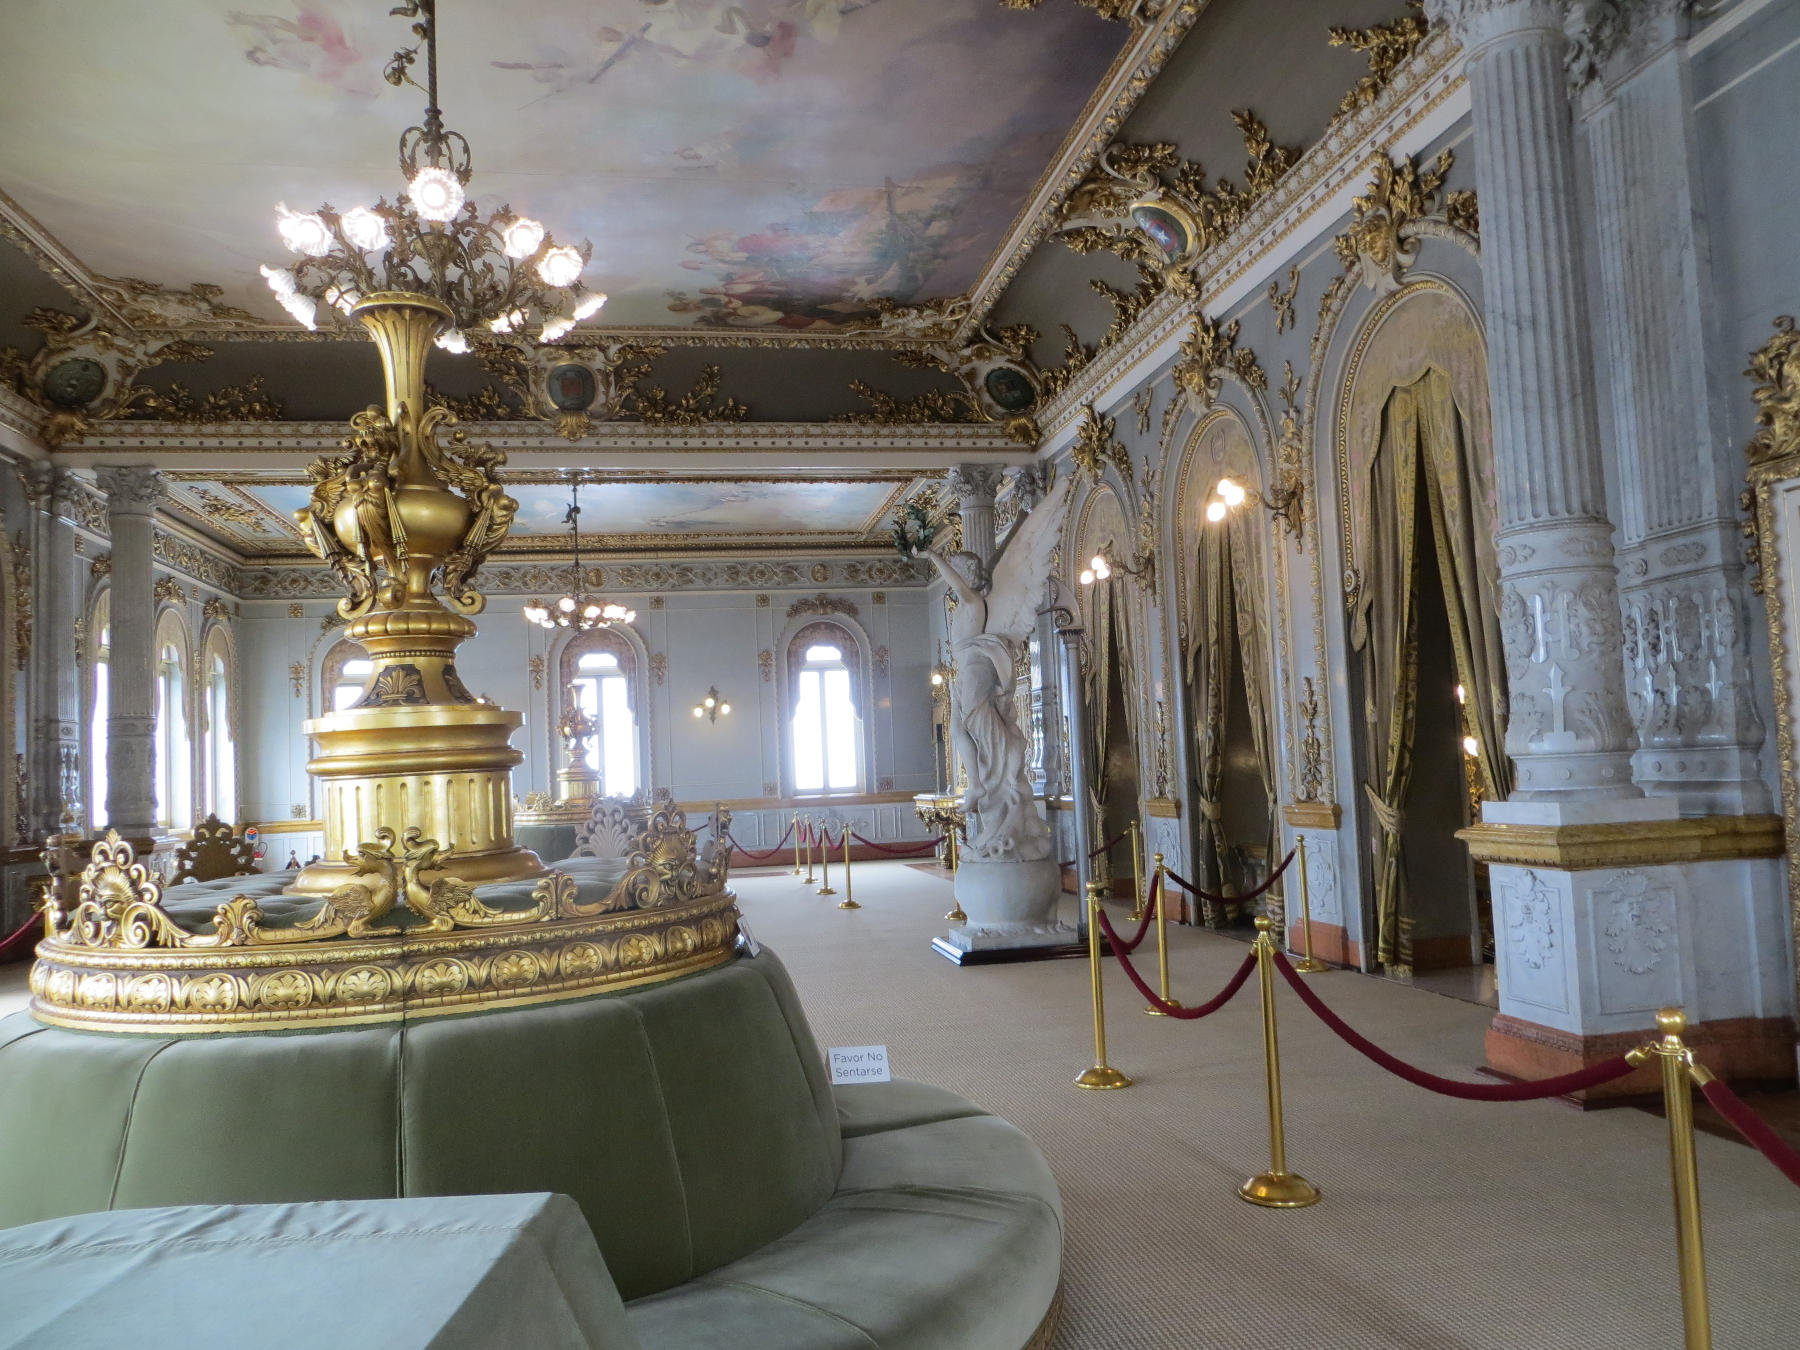 The Foyer, which is on the second floor above the lobby, is an elegant room used for receptions and recitals